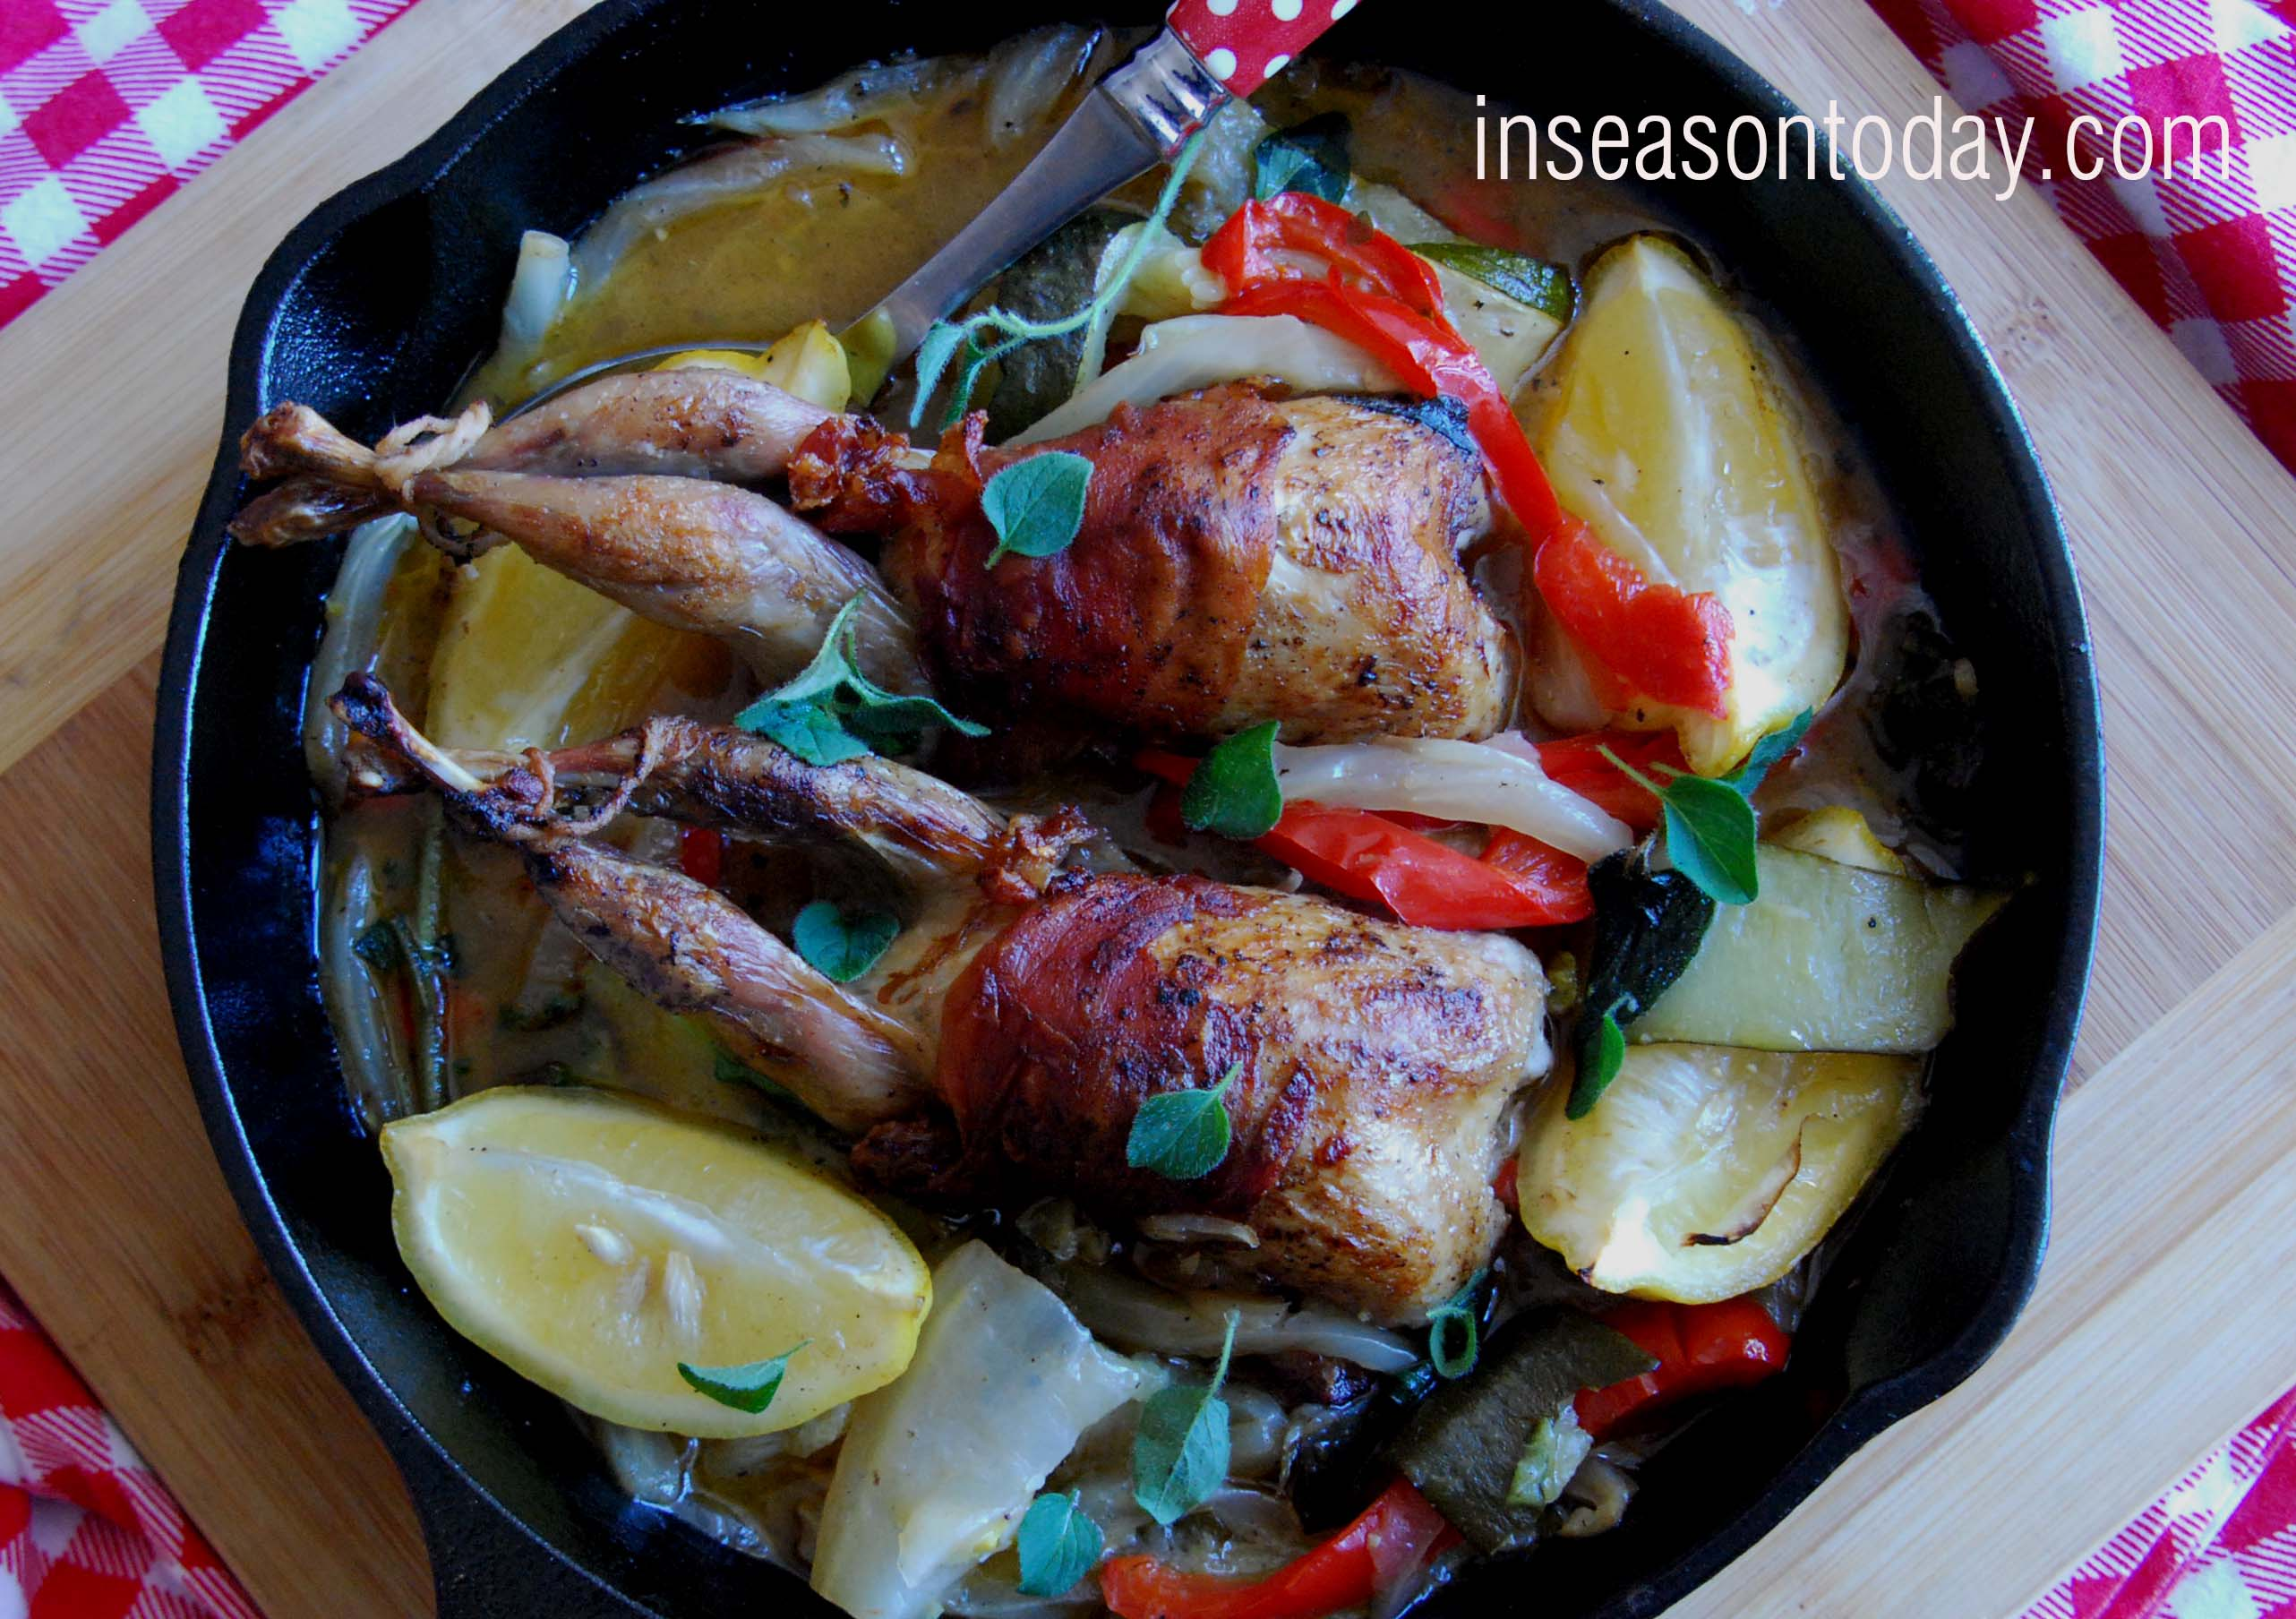 Italian Roasted Quail With Braised Vegetables 2